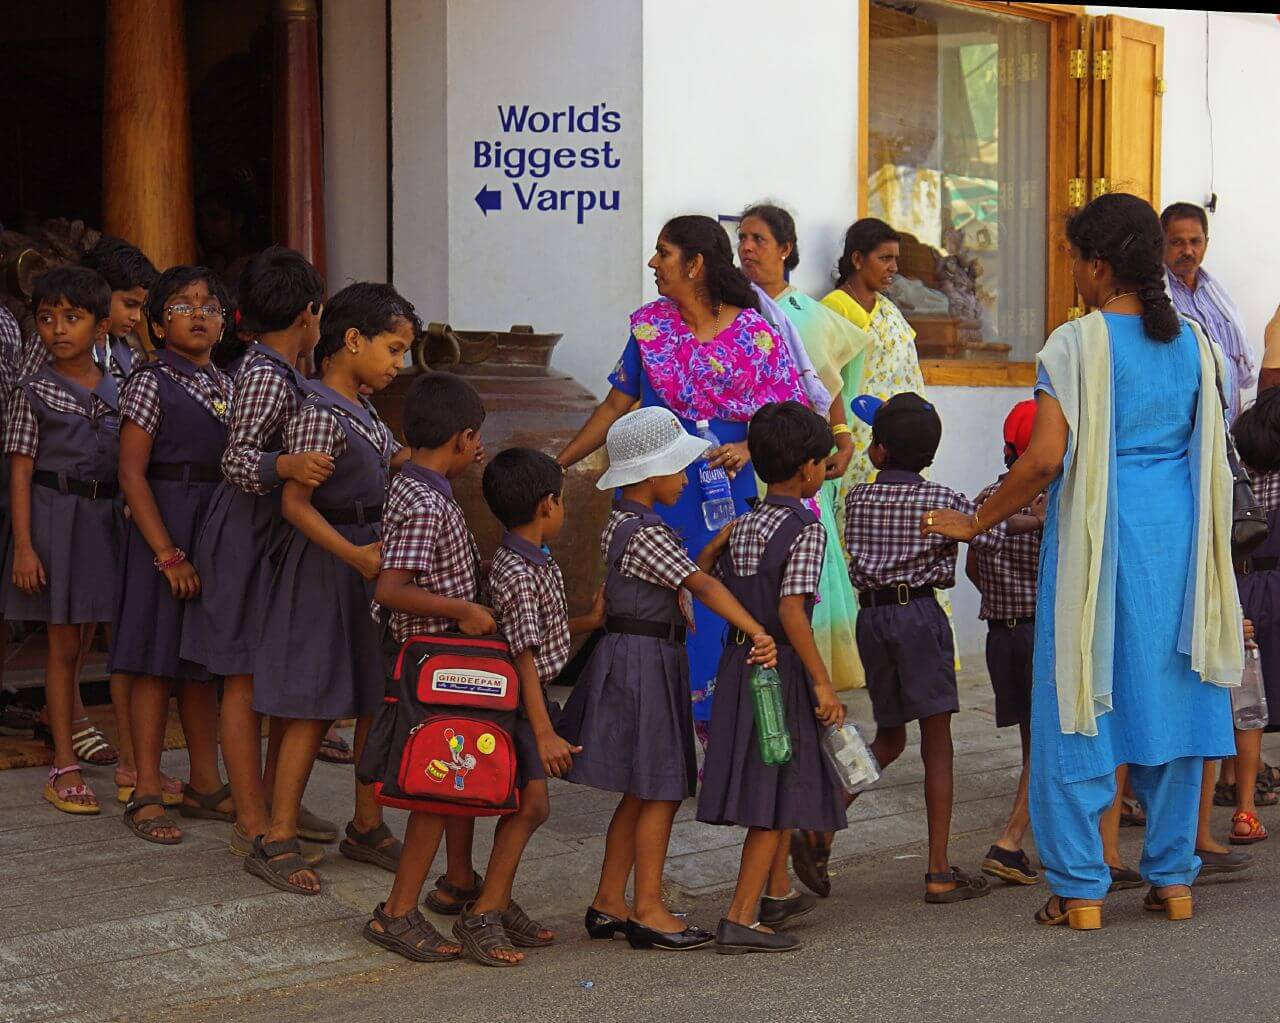 Public Duties and Private Schools: the Indian Supreme Court's Landmark Ruling